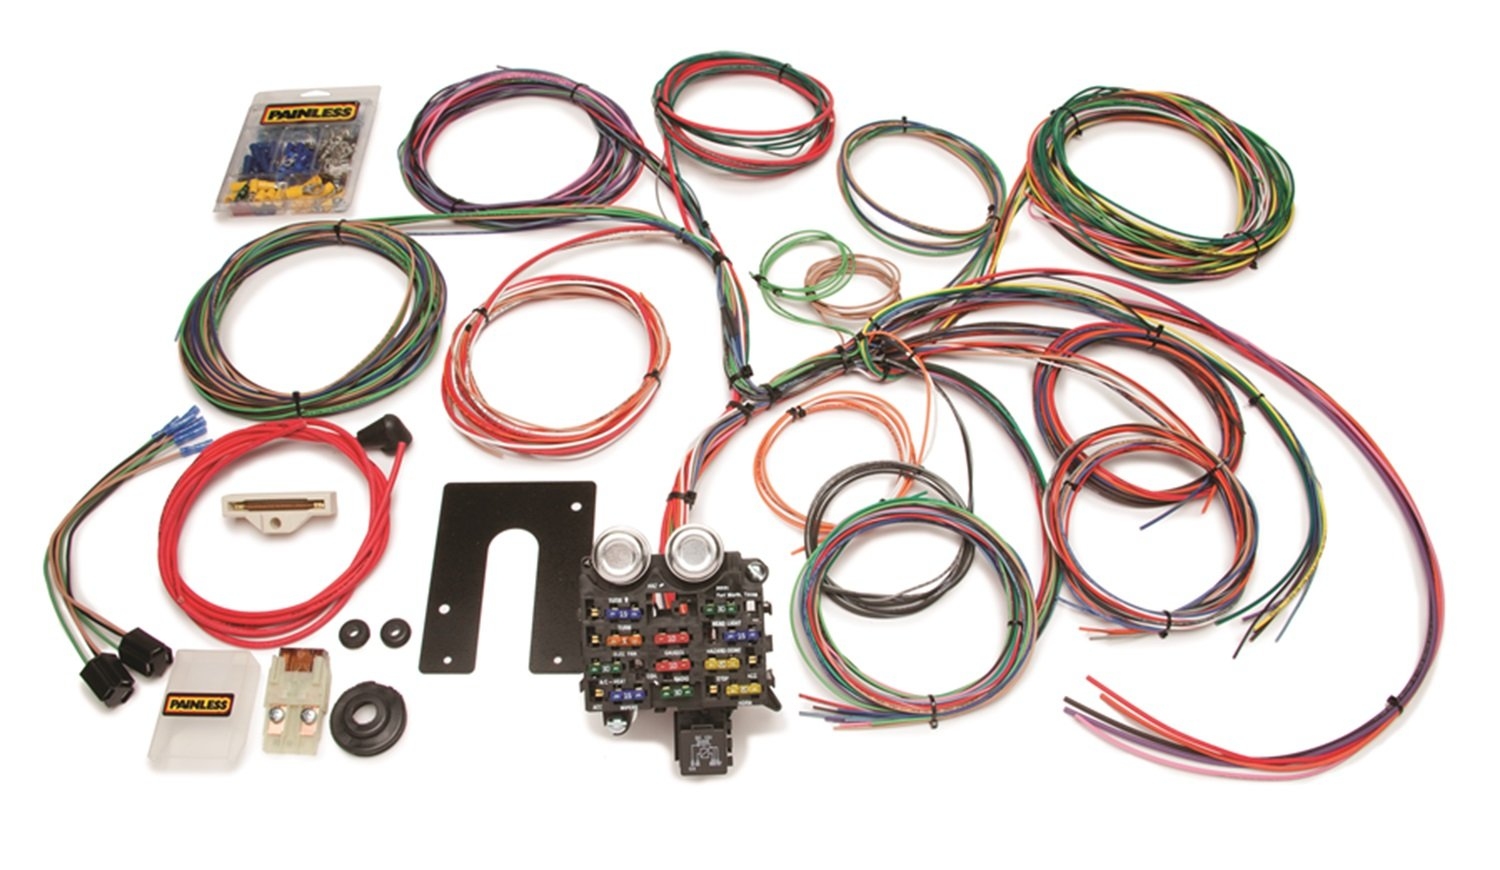 amazon com painless wire 10105 wiring harness with firewall grommet rh amazon com wiring harness for 1979 jeep cj5 wiring harness 1978 jeep cj5